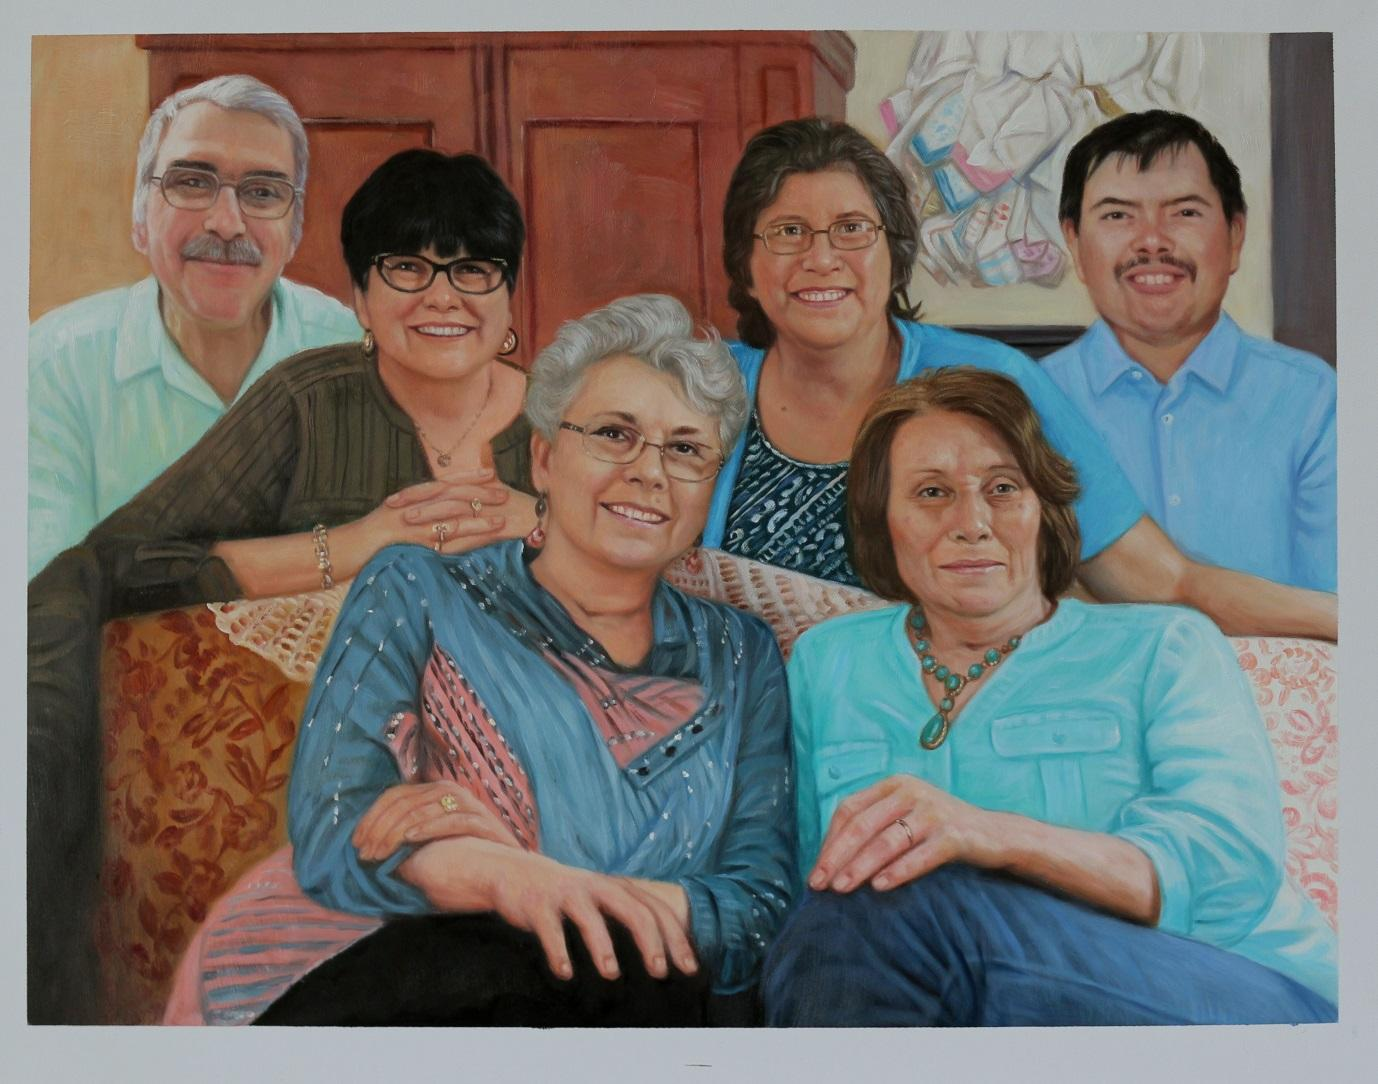 THE FINAL FAMILY PAINTING